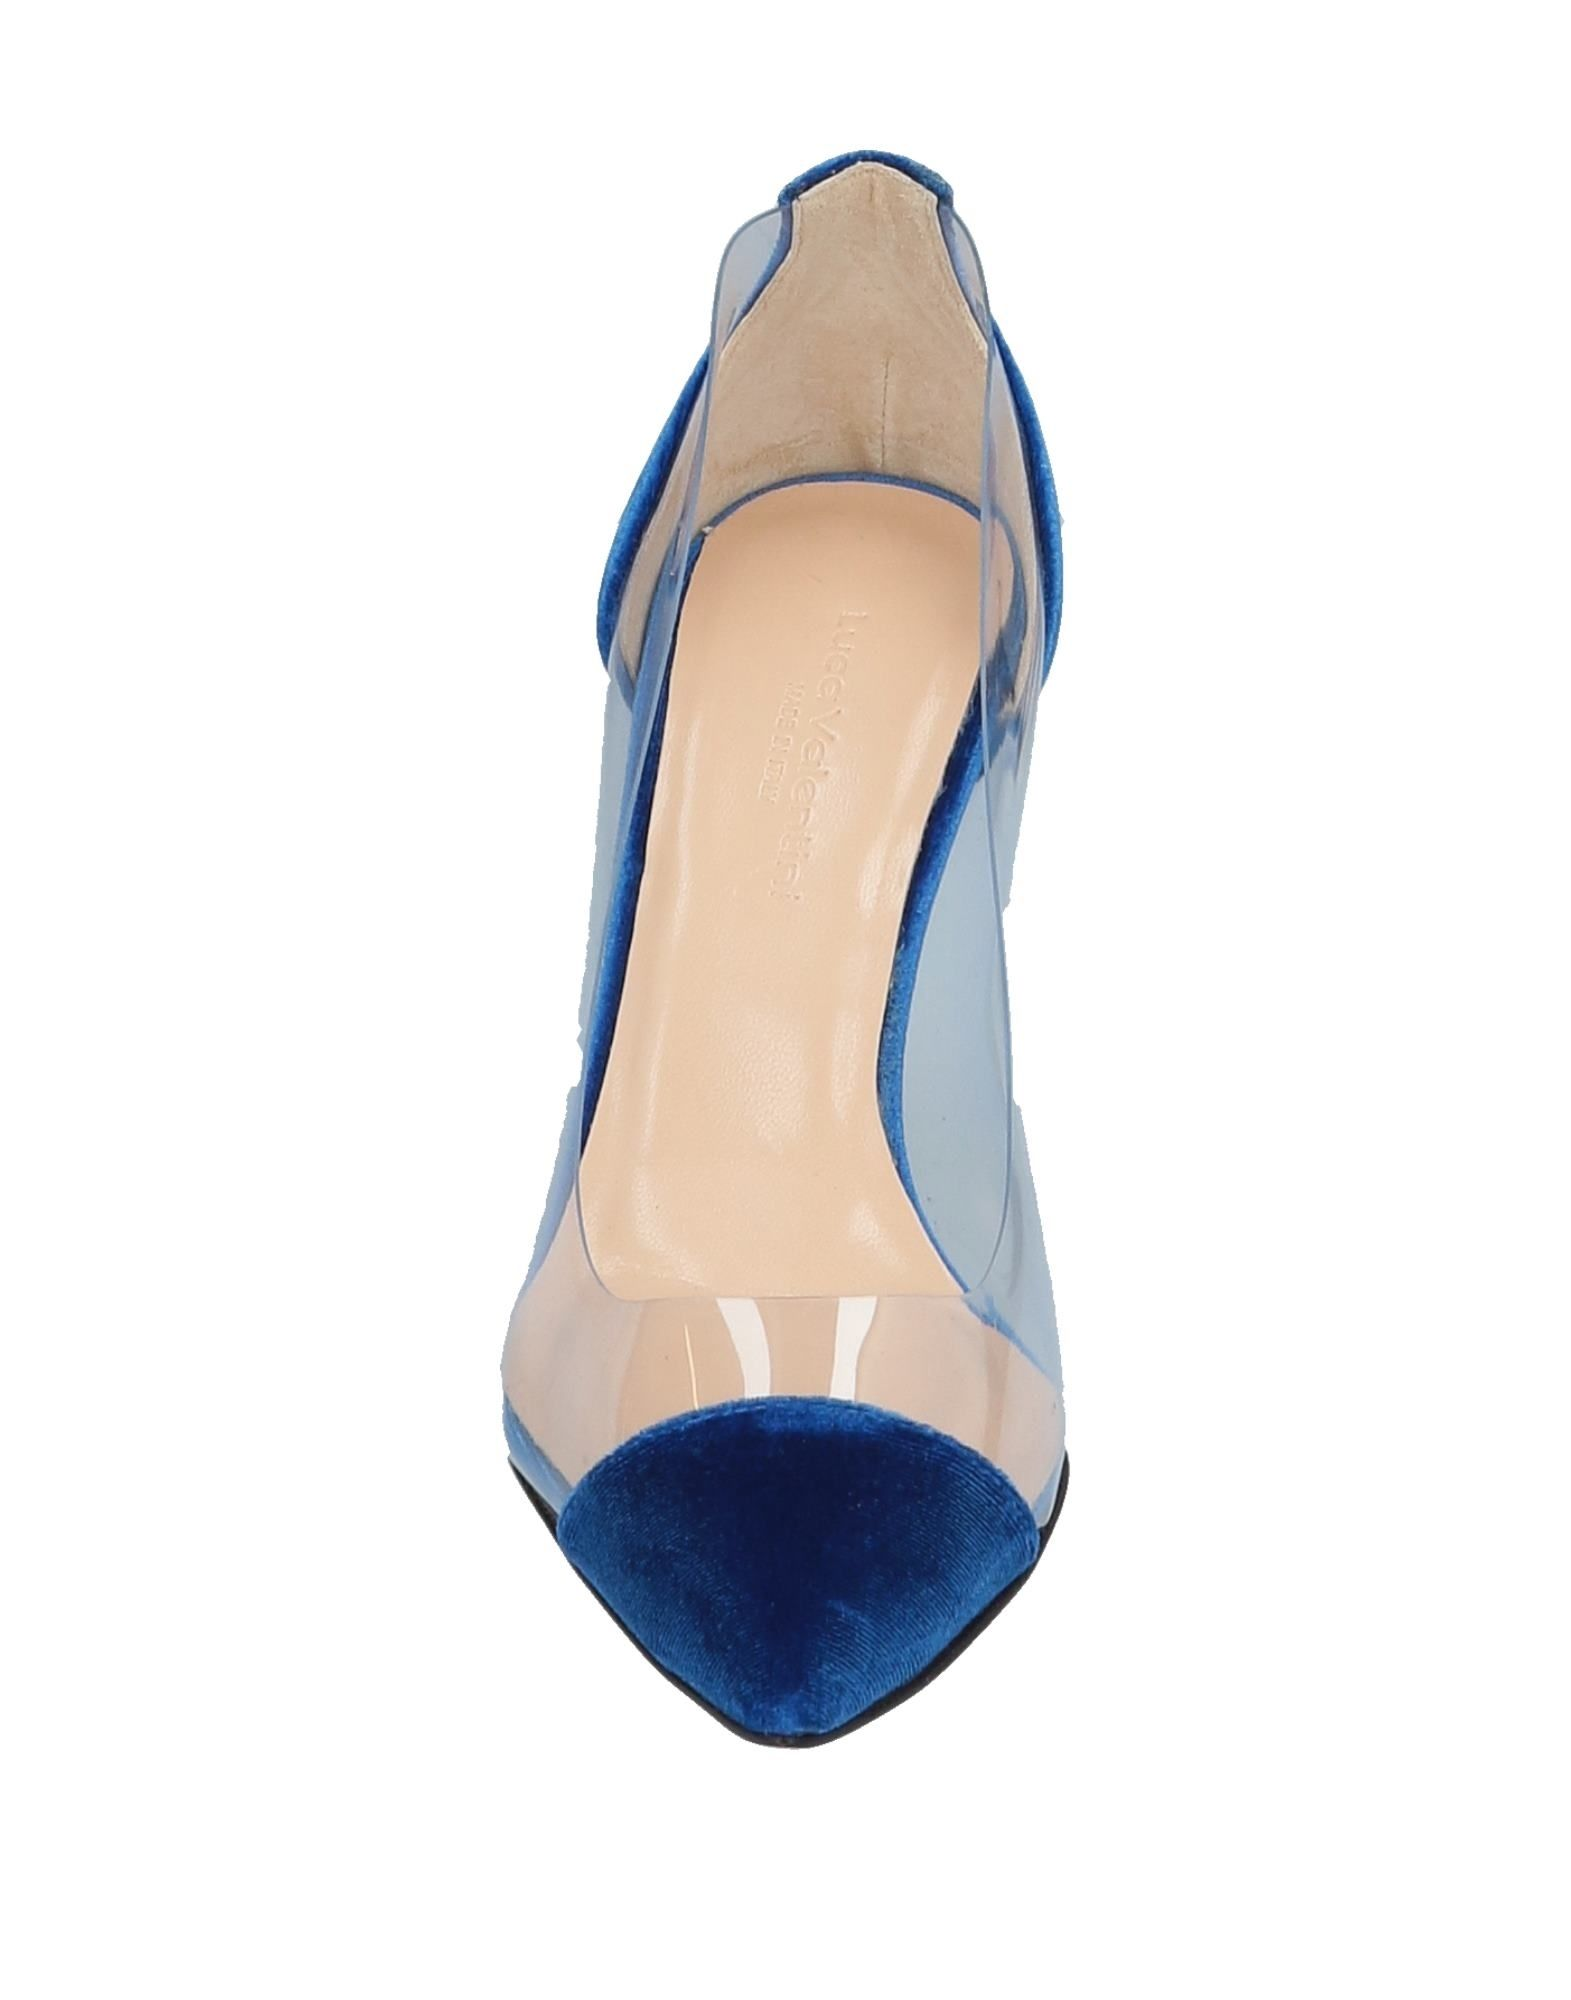 Stilvolle Pumps billige Schuhe Luca Valentini Pumps Stilvolle Damen  11536687WP 7d43a3